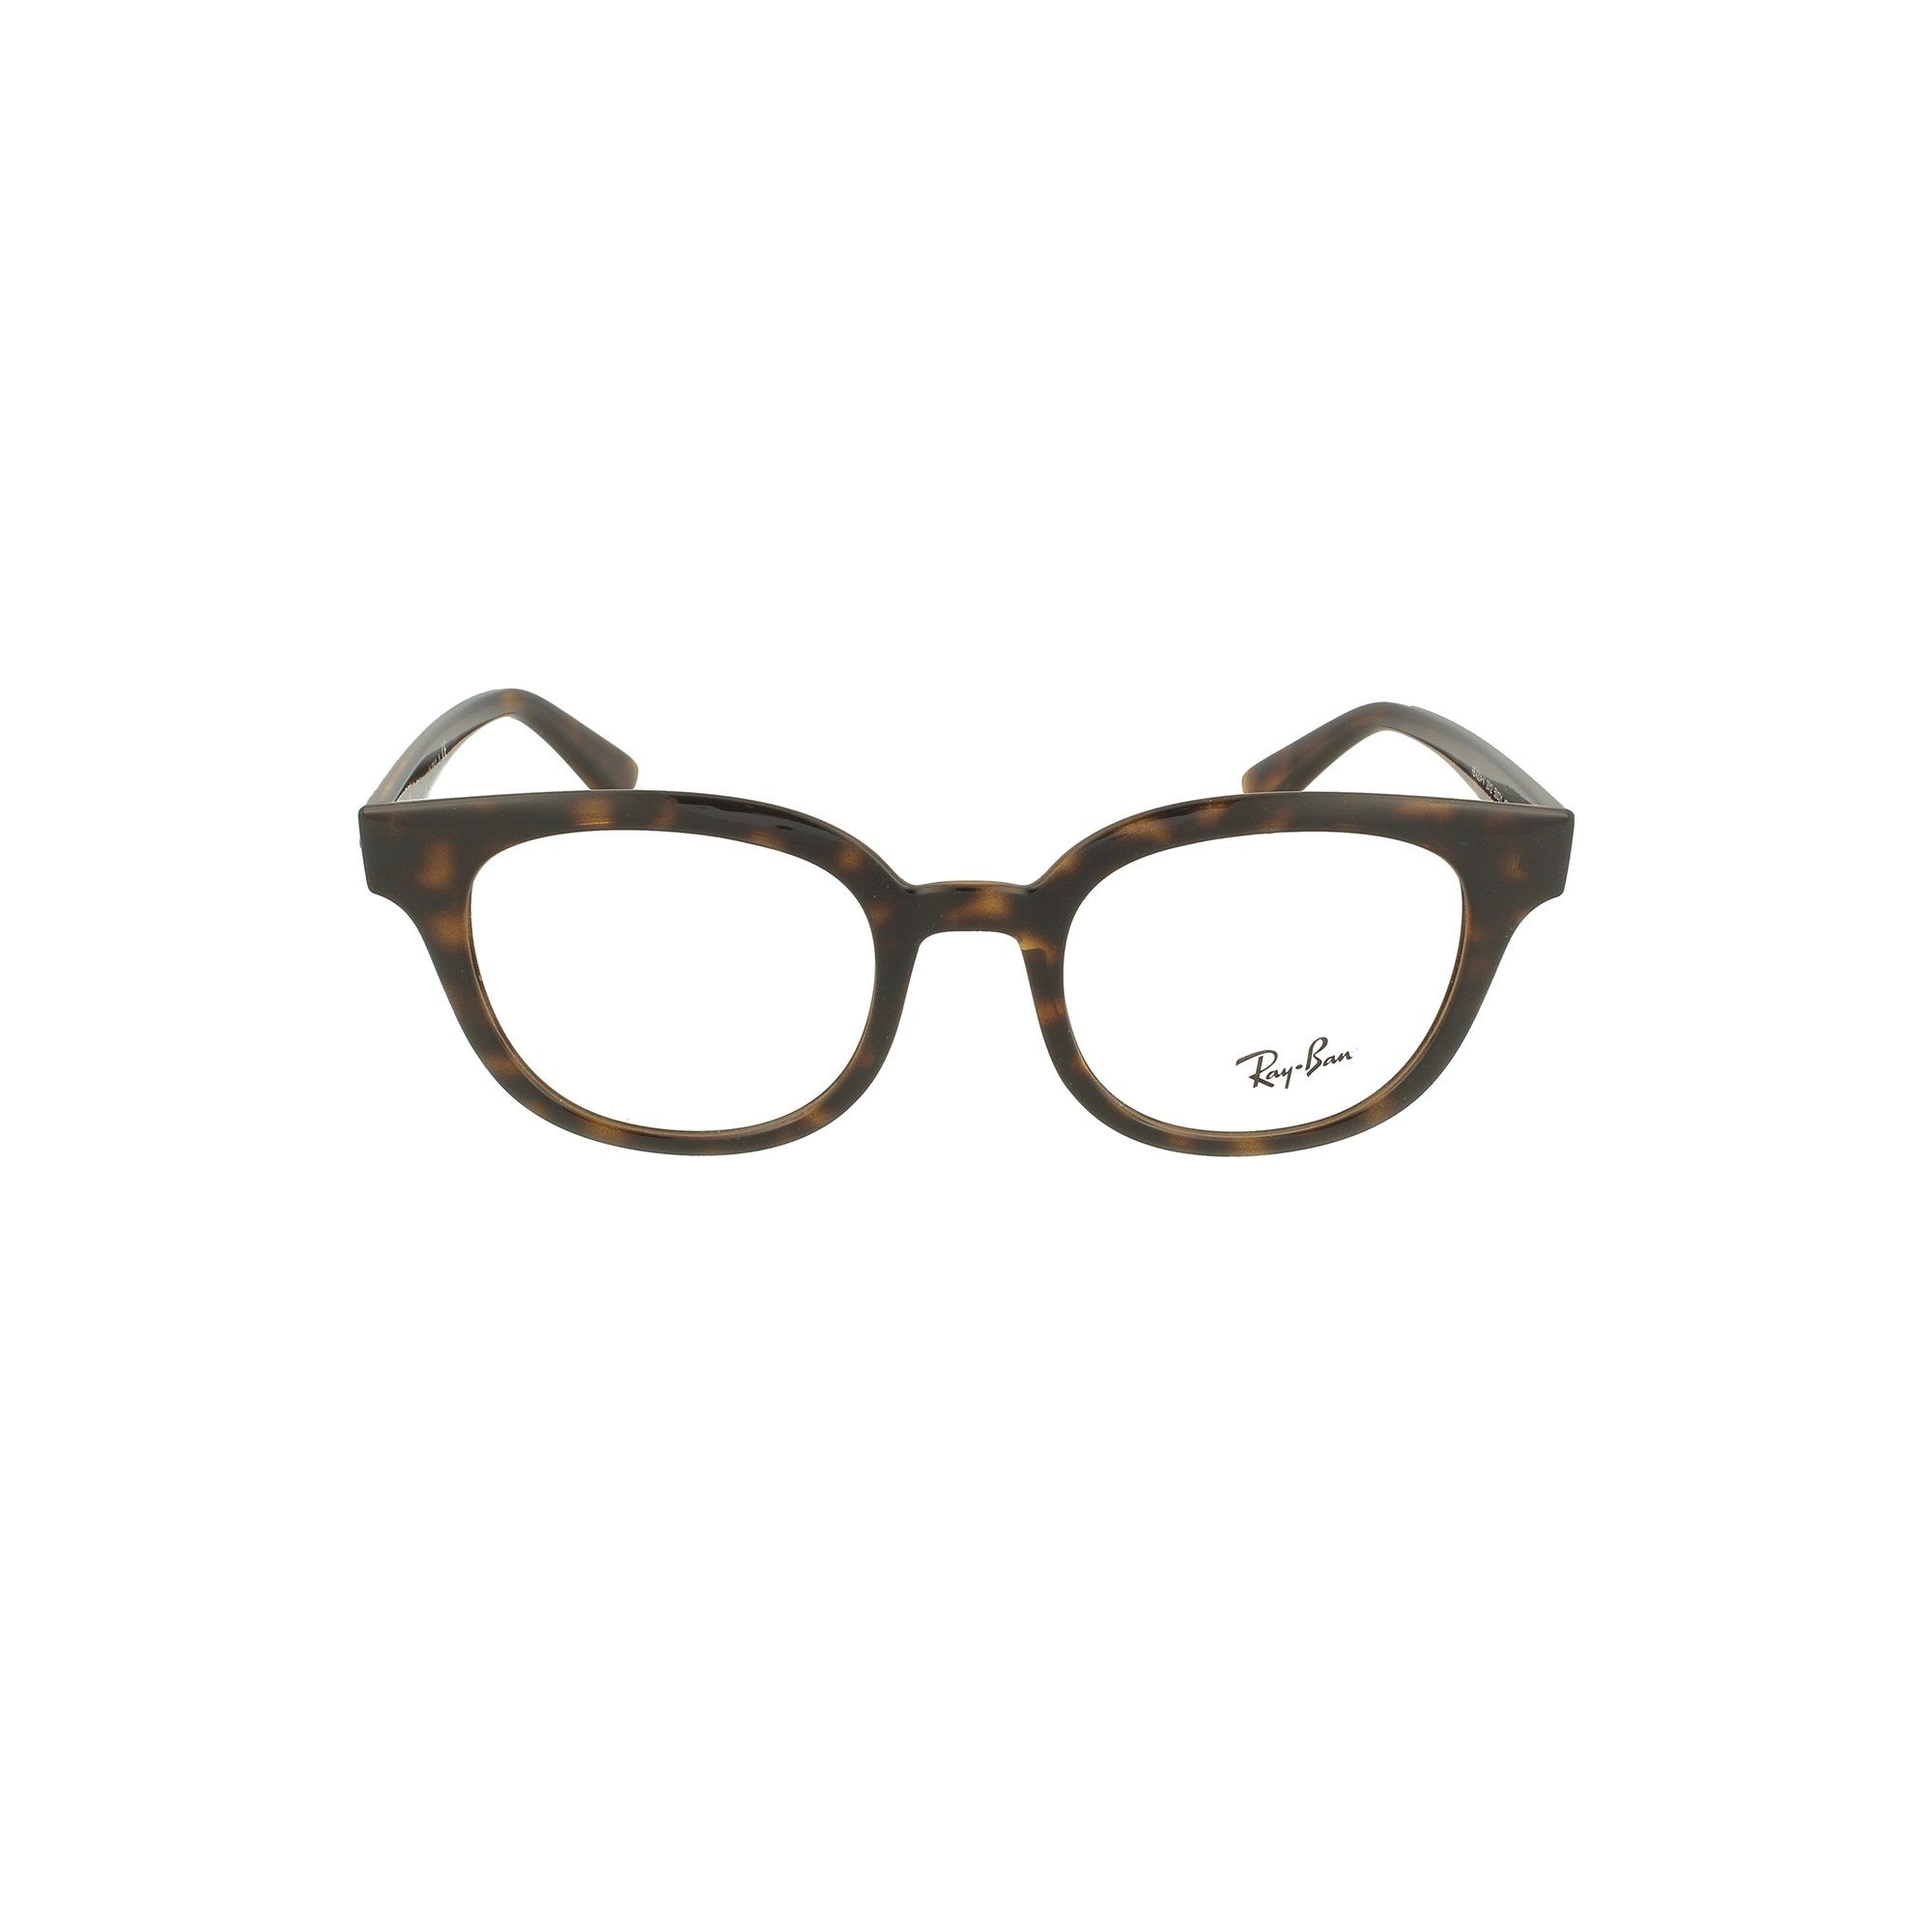 Ray Ban RAY BAN WOMEN'S BROWN ACETATE GLASSES